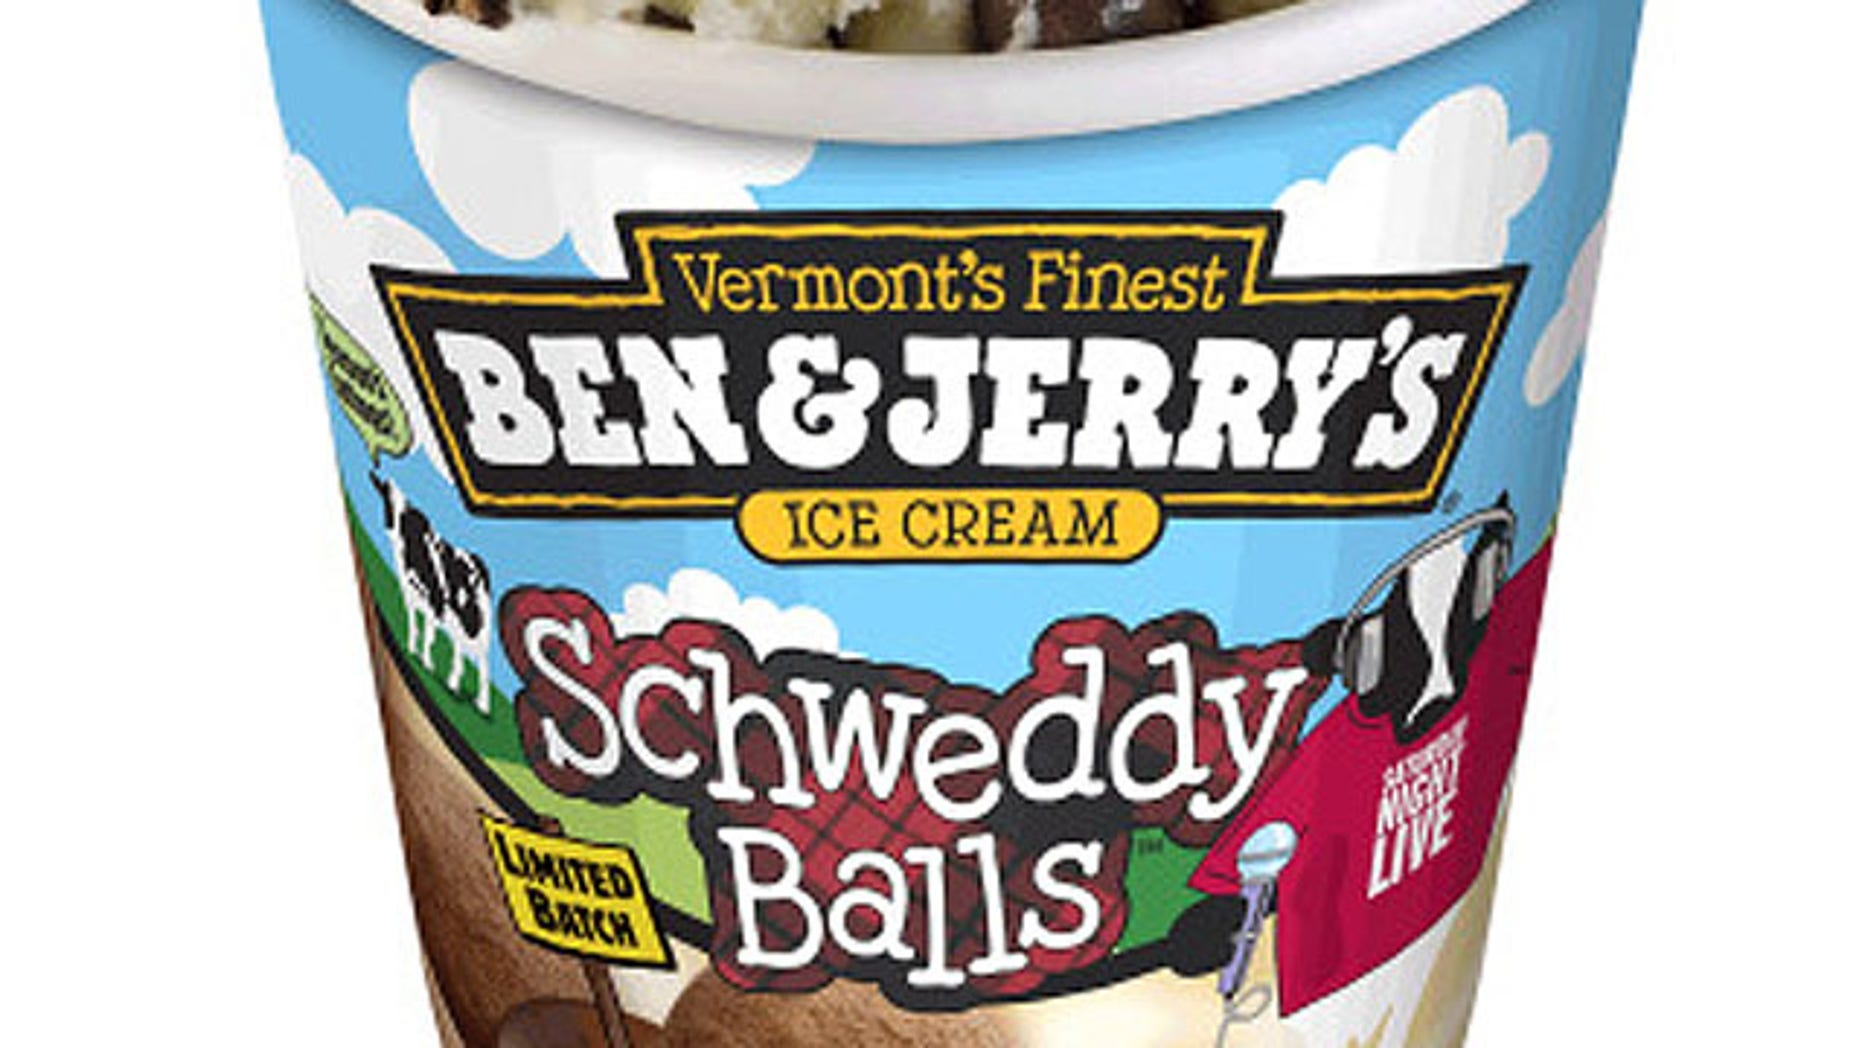 Officials at One Million Moms are asking the public to send correspondence to Ben & Jerry's public relations manager to request that no additional batches of 'Schweddy Balls' ice cream be distributed.